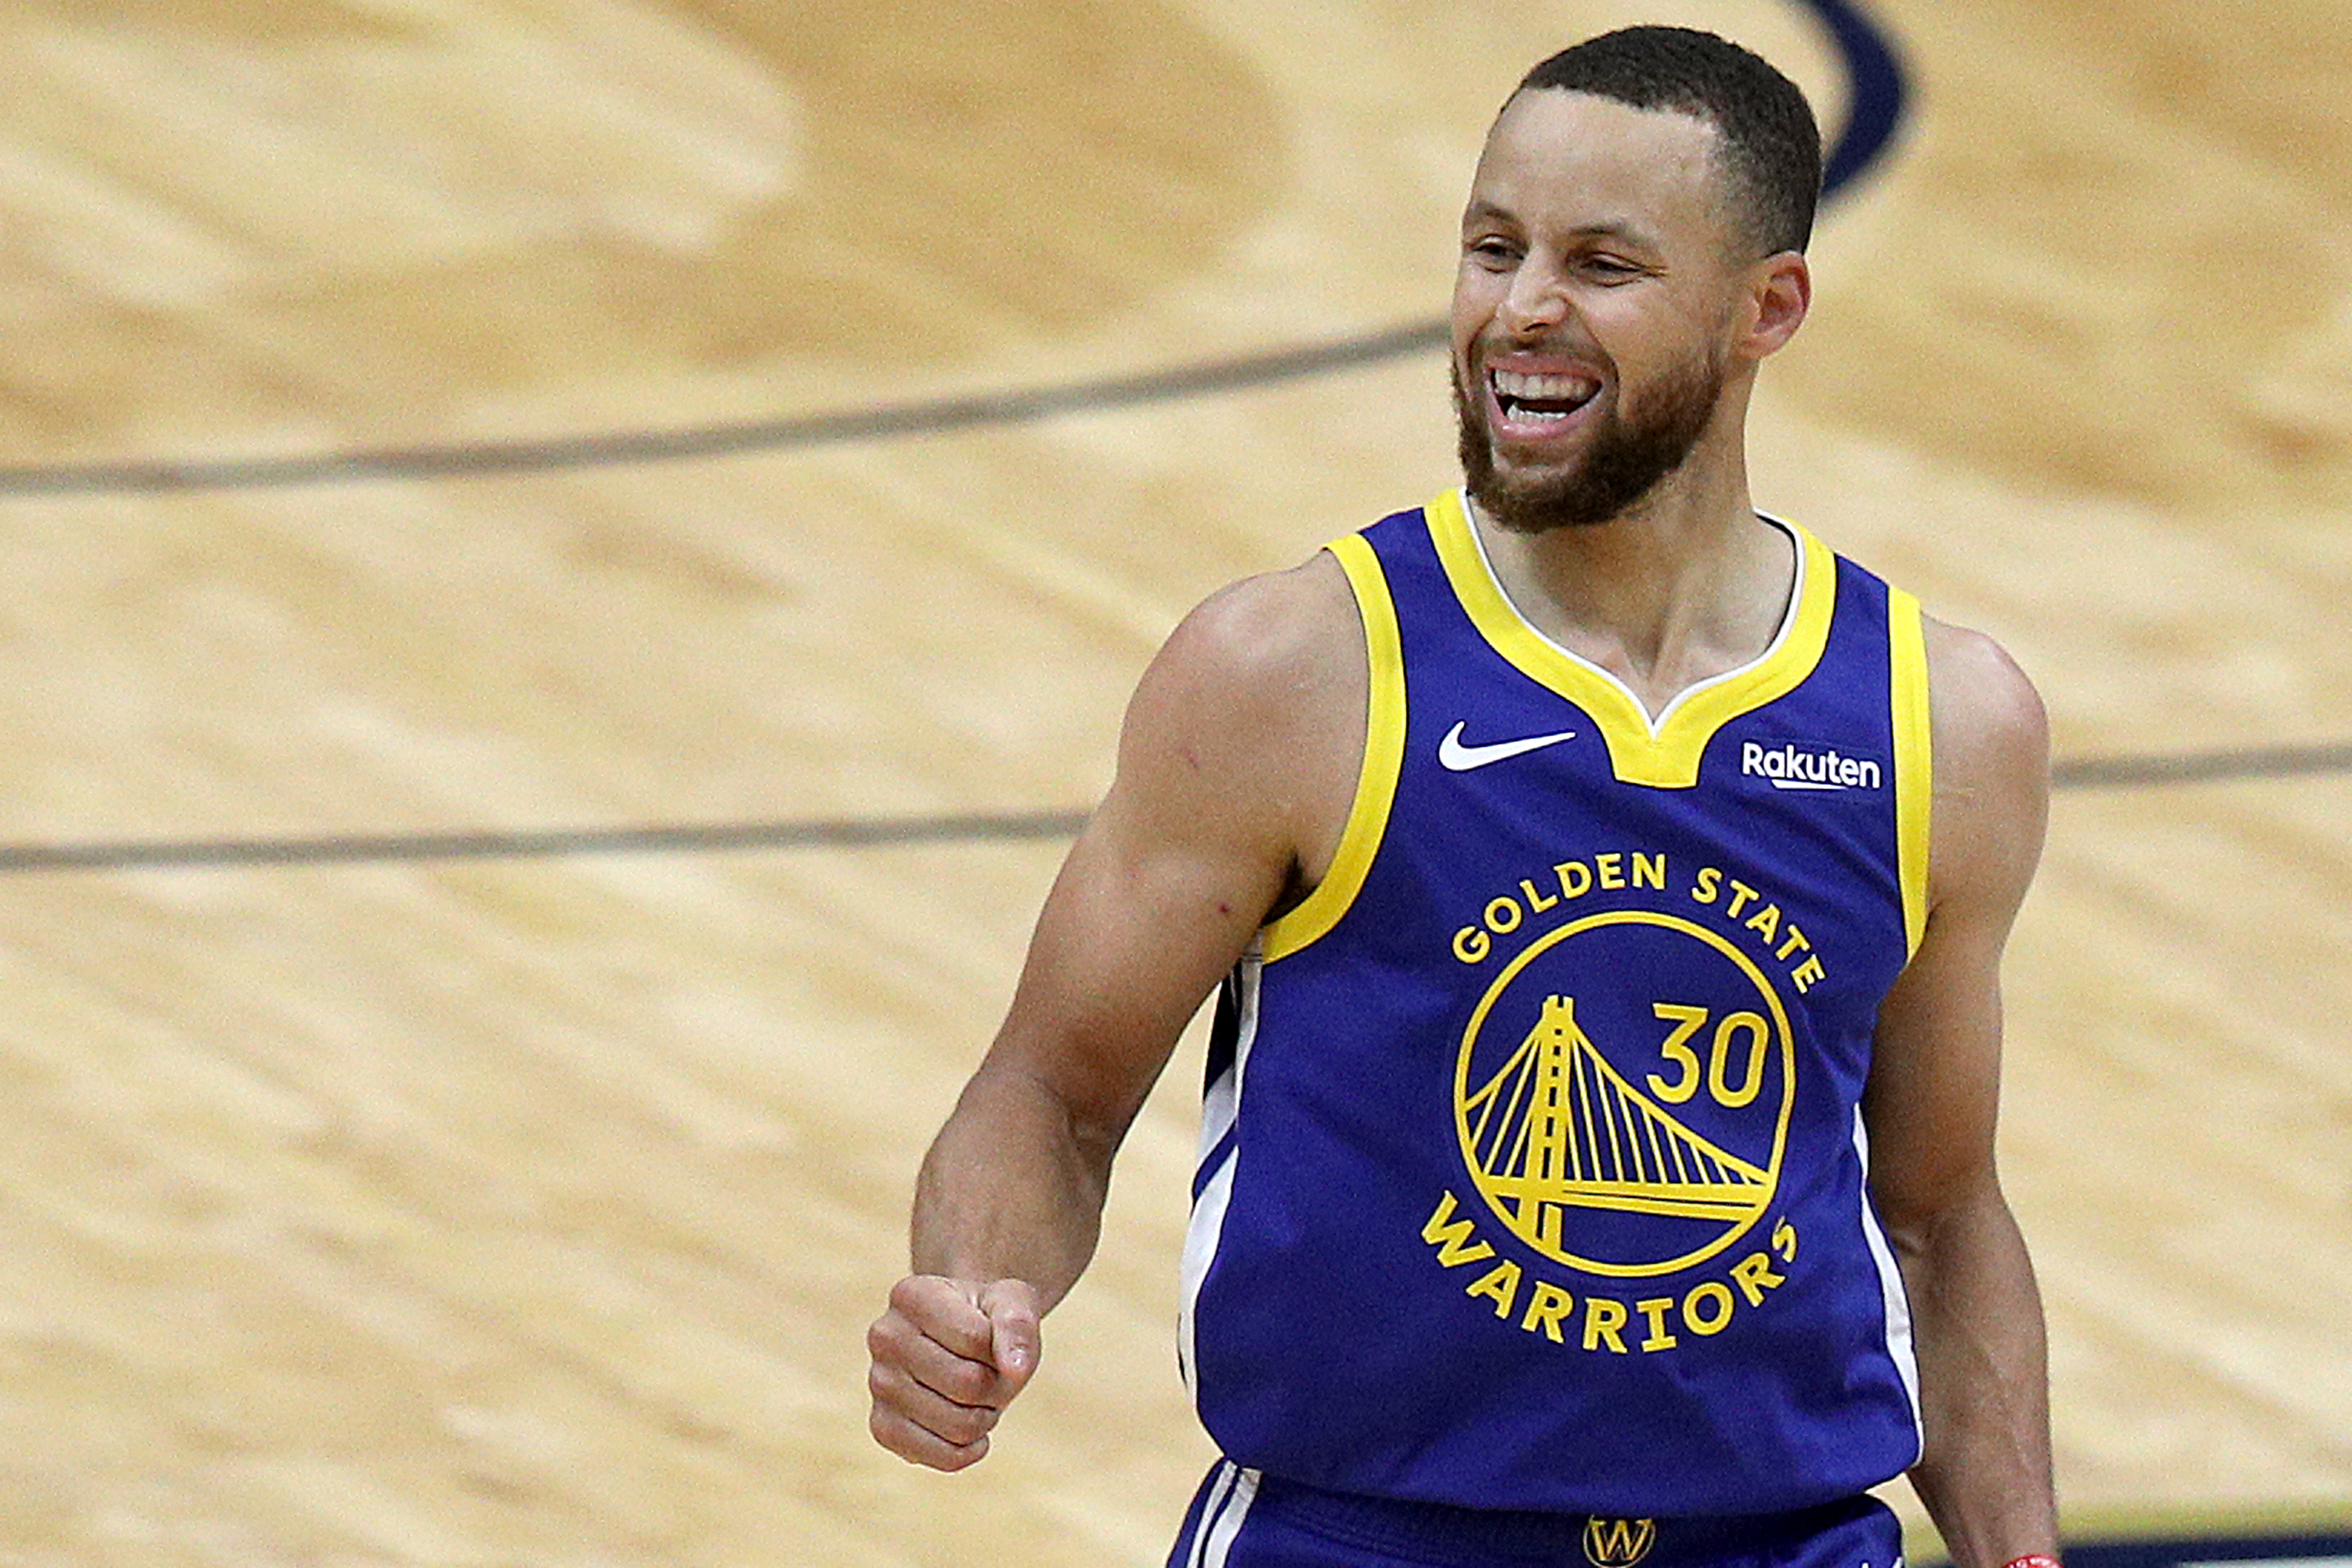 Stephen Curry of the Golden State Warriors reacts after scoring a three point basket during the first quarter of an NBA game against the New Orleans Pelicans at Smoothie King Center on May 04, 2021 in New Orleans, Louisiana.